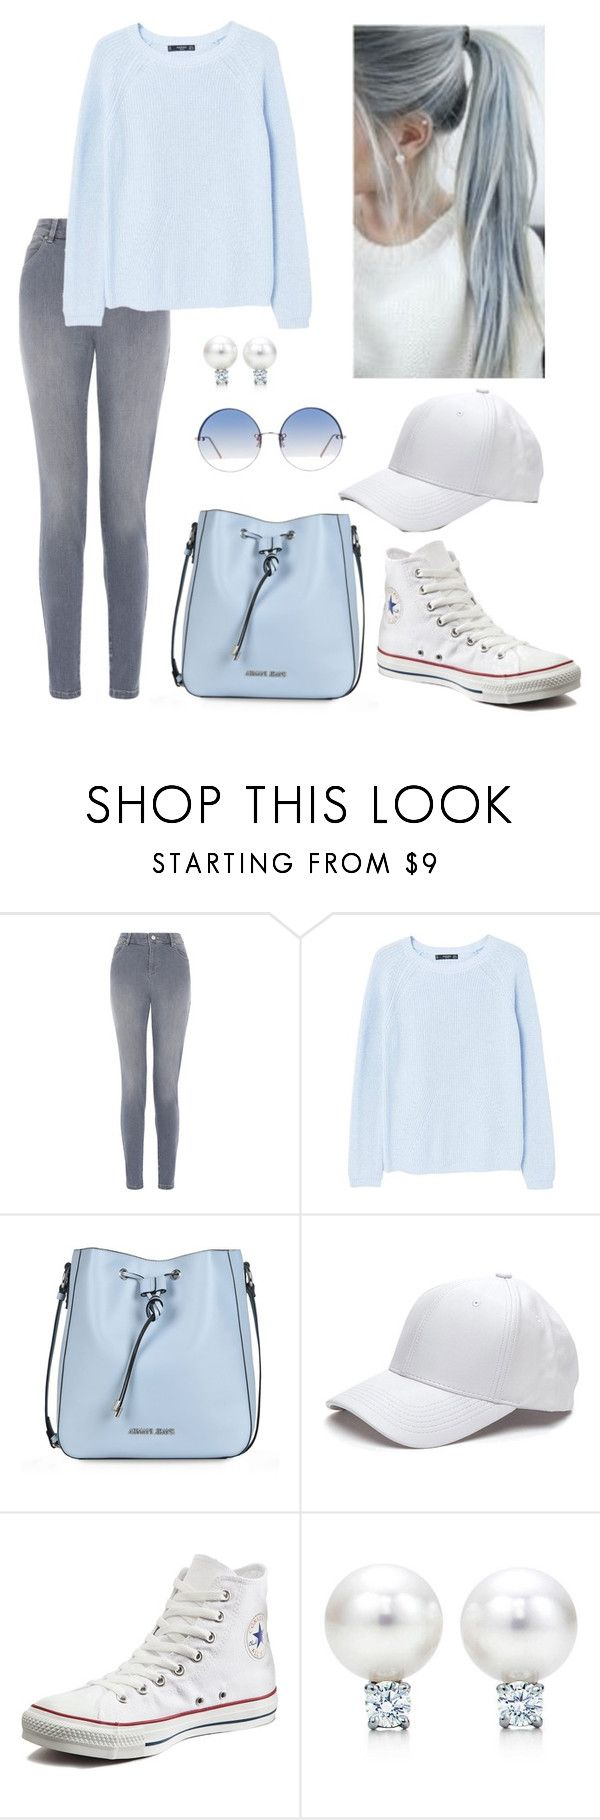 """""""denim"""" by lichuchu ❤ liked on Polyvore featuring beauty, Monsoon, MANGO, Armani Jeans, Converse, Linda Farrow, hairtrend and rainbowhair"""